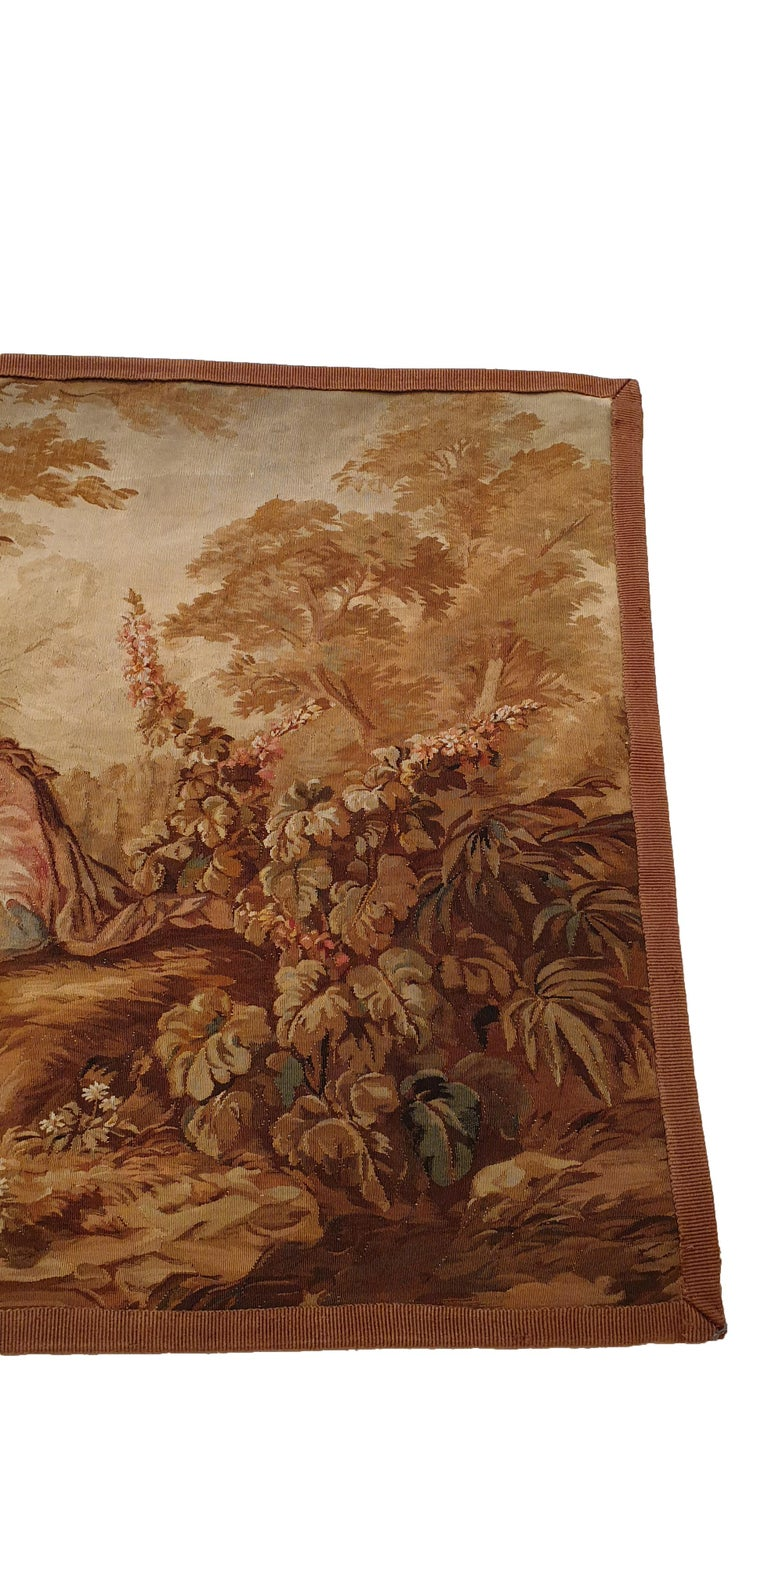 Louis XIV 704 - 19th Century Brussels Handwoven Tapestry